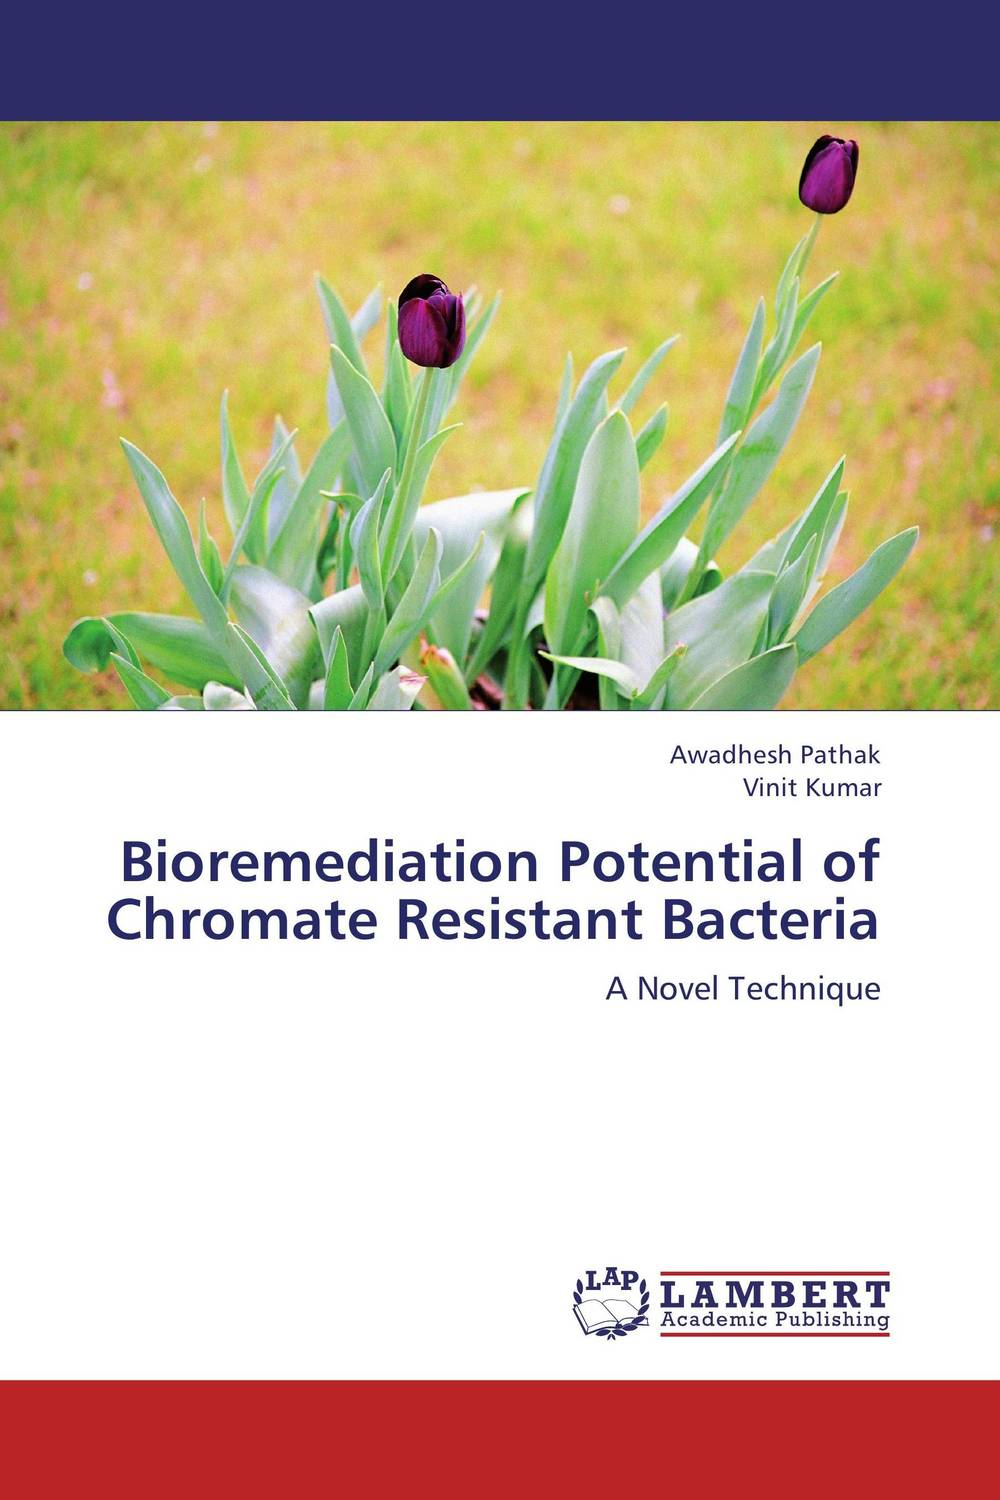 Bioremediation Potential of Chromate Resistant Bacteria ткань портьерная garden выс 290см кремовый